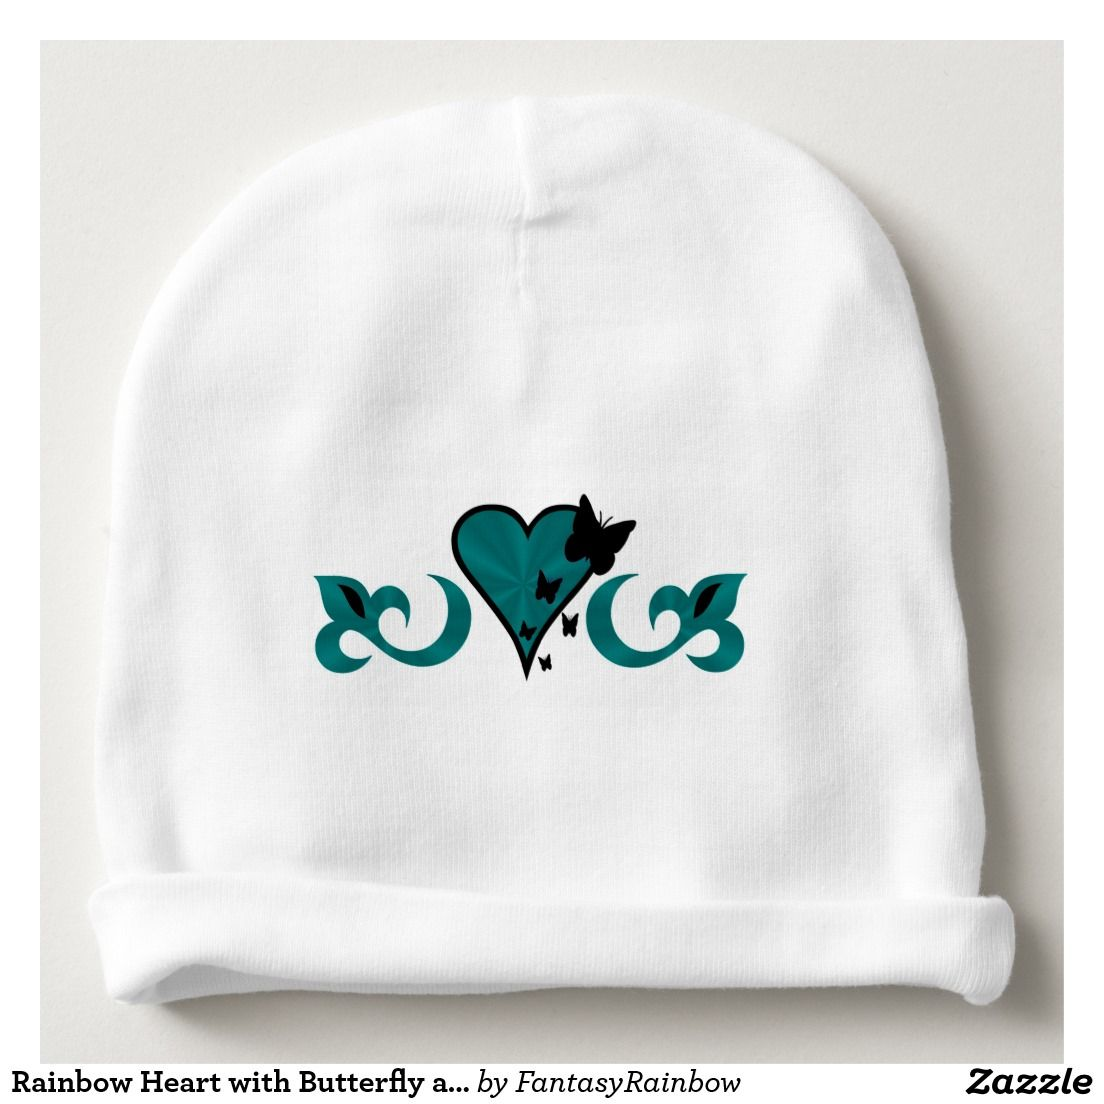 #NEW #Rainbow #Heart with #Butterfly and #Lily #Baby #Beanie - #Christmas #Gift #forKids #Offer 20% Off All Orders | 50% Off T-Shirts, Mugs, Pillows, Tote Bags & Stickers! TODAY ONLY Use Code: ZAZCRAZYFIVE